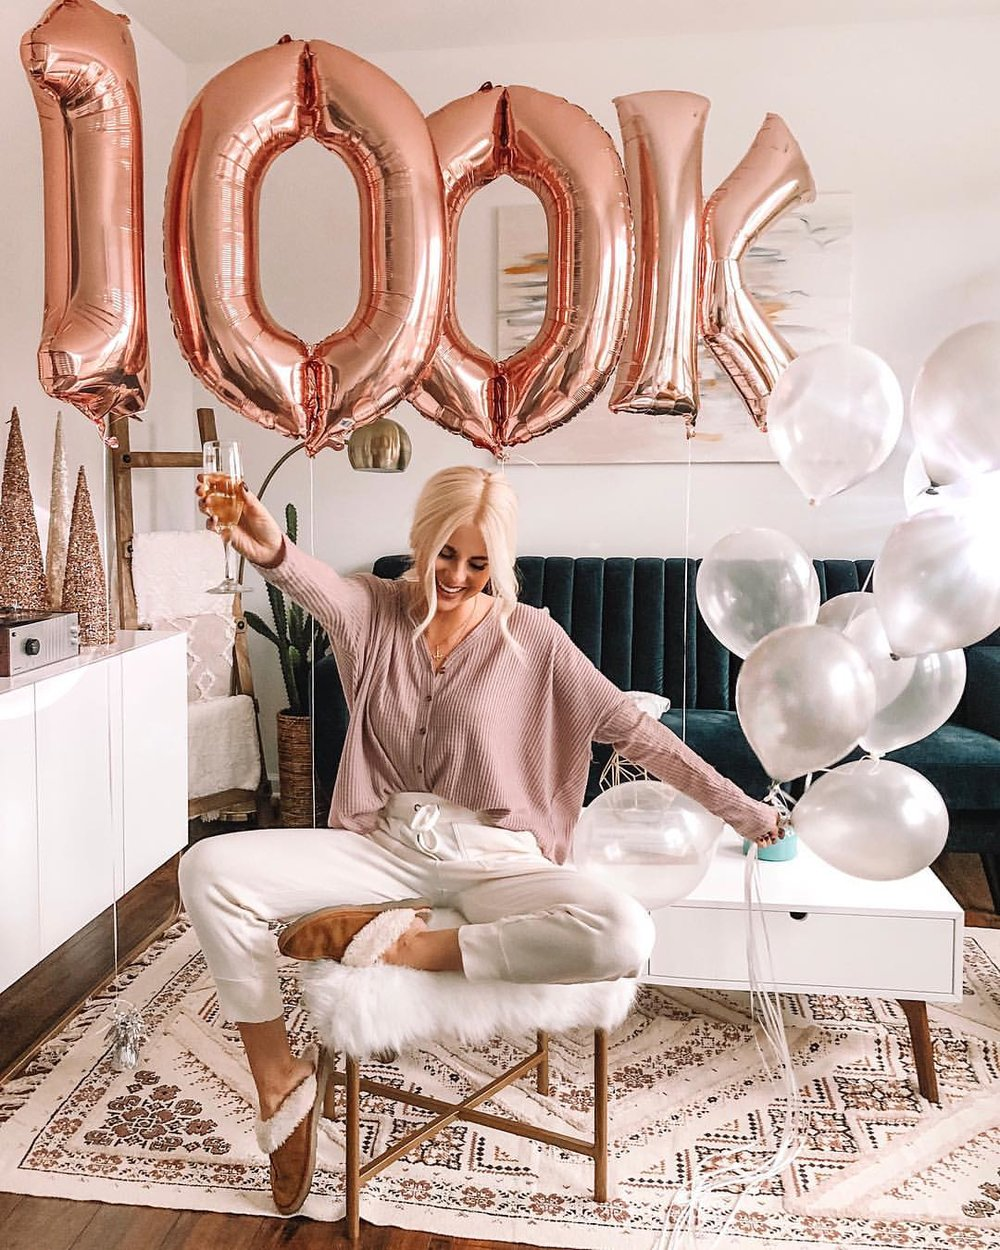 - Reached 100K followers on Instagram and celebrated this HUGE milestone!!!! Such a dream come true!